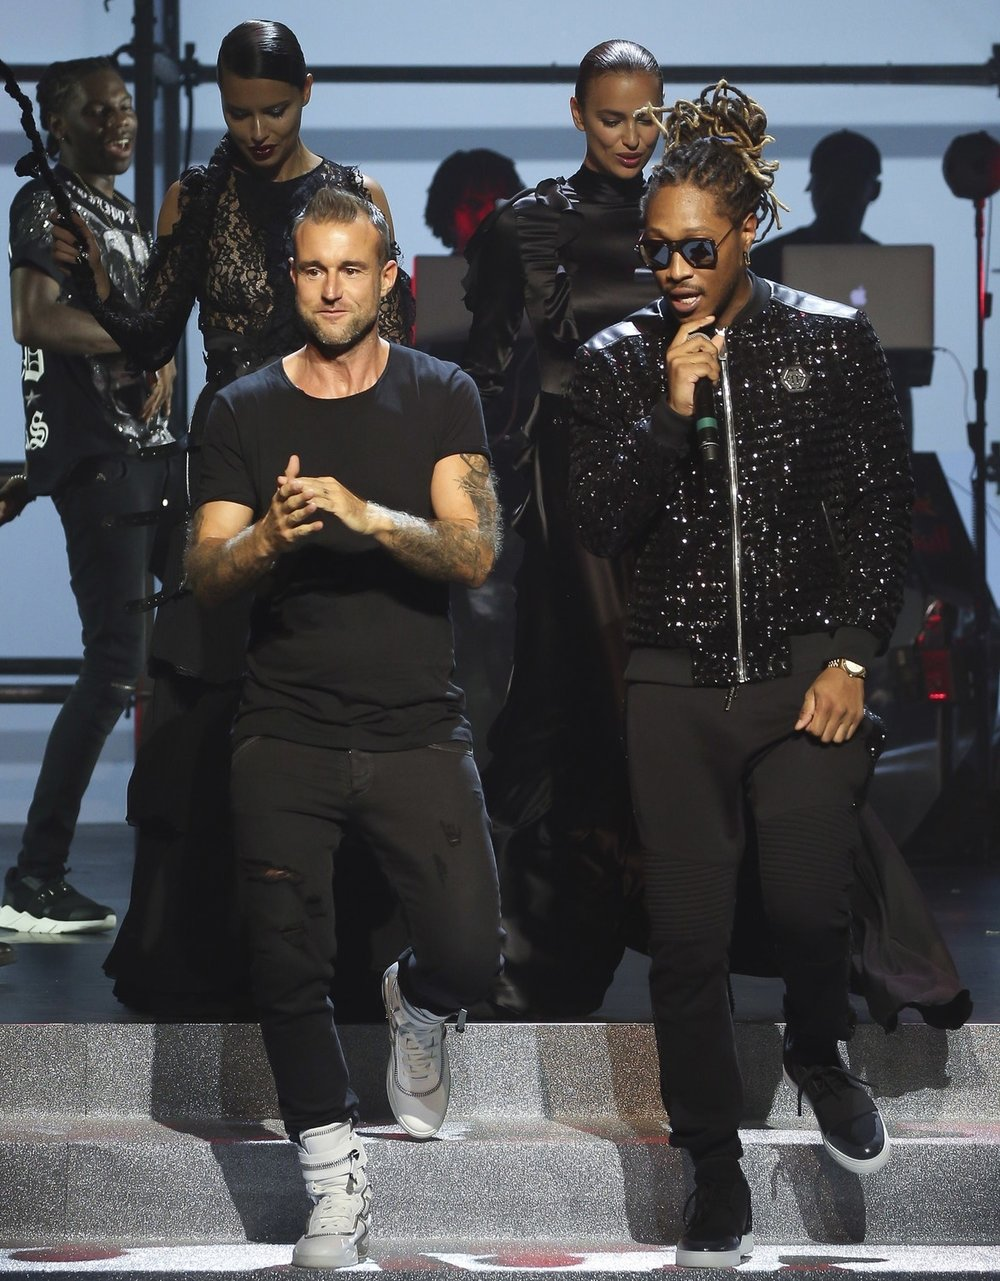 Philipp Plein - Bridging the gap between the art of music and the art of fashion, Plein gives us a collection perfectly meshing the two incorperating rappers into the show as models and performers